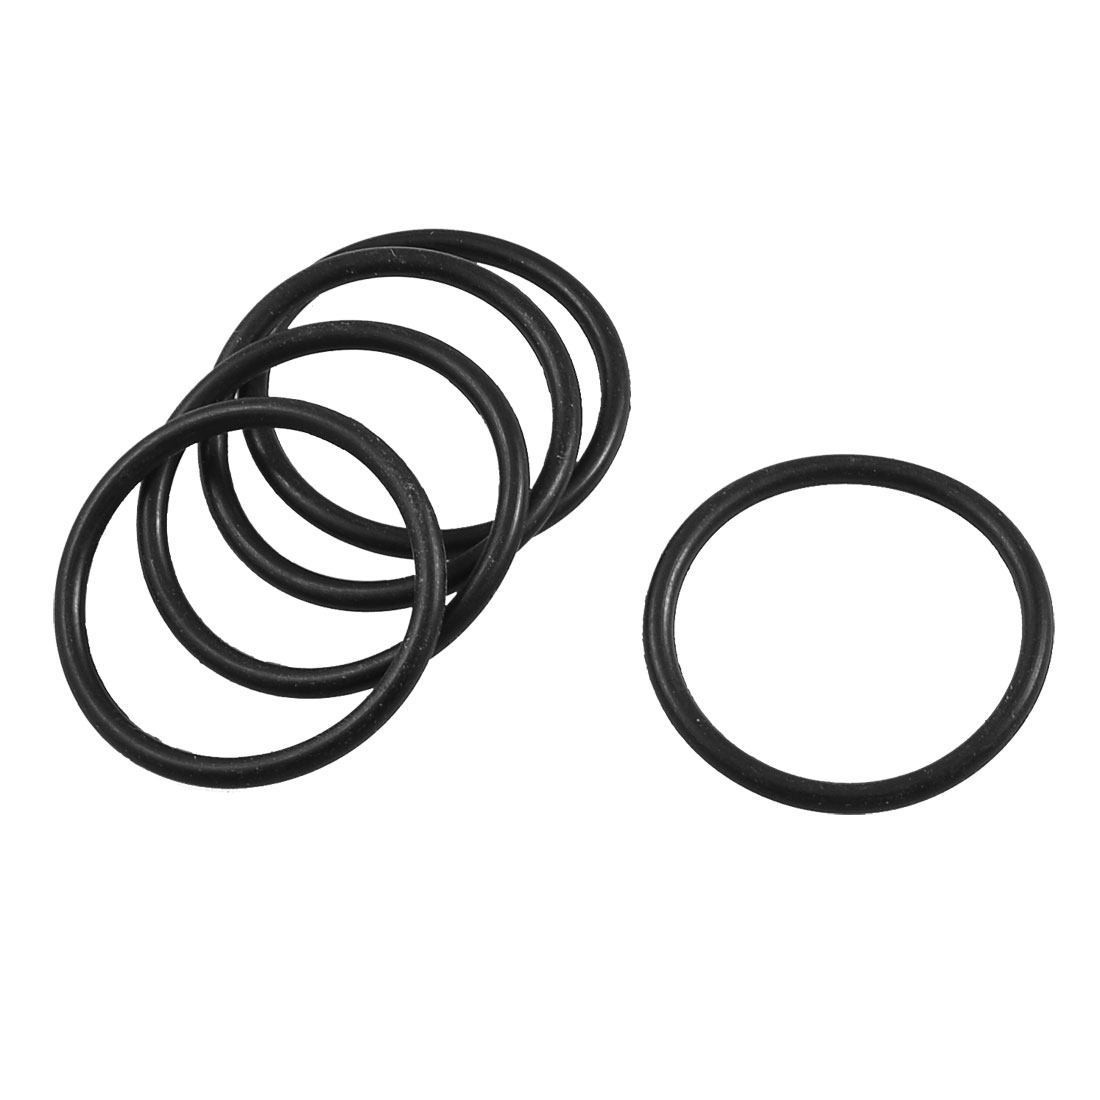 5 Pcs 44mm x 37mm x 3.5mm Mechanical Flexible Rubber O Ring Oil Seal Gaskets